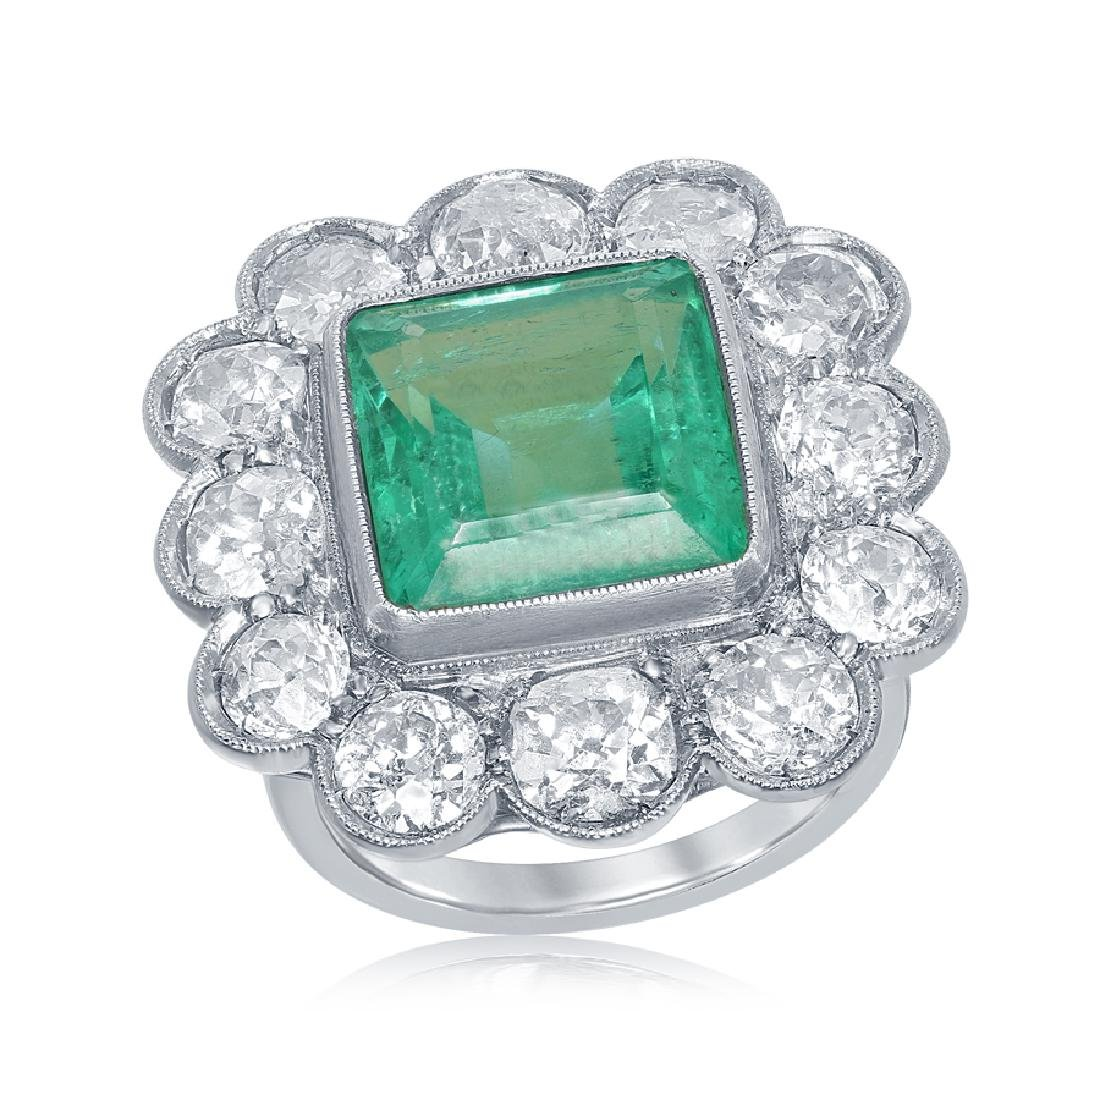 Antique Columbian Emerald Ring with Diamonds